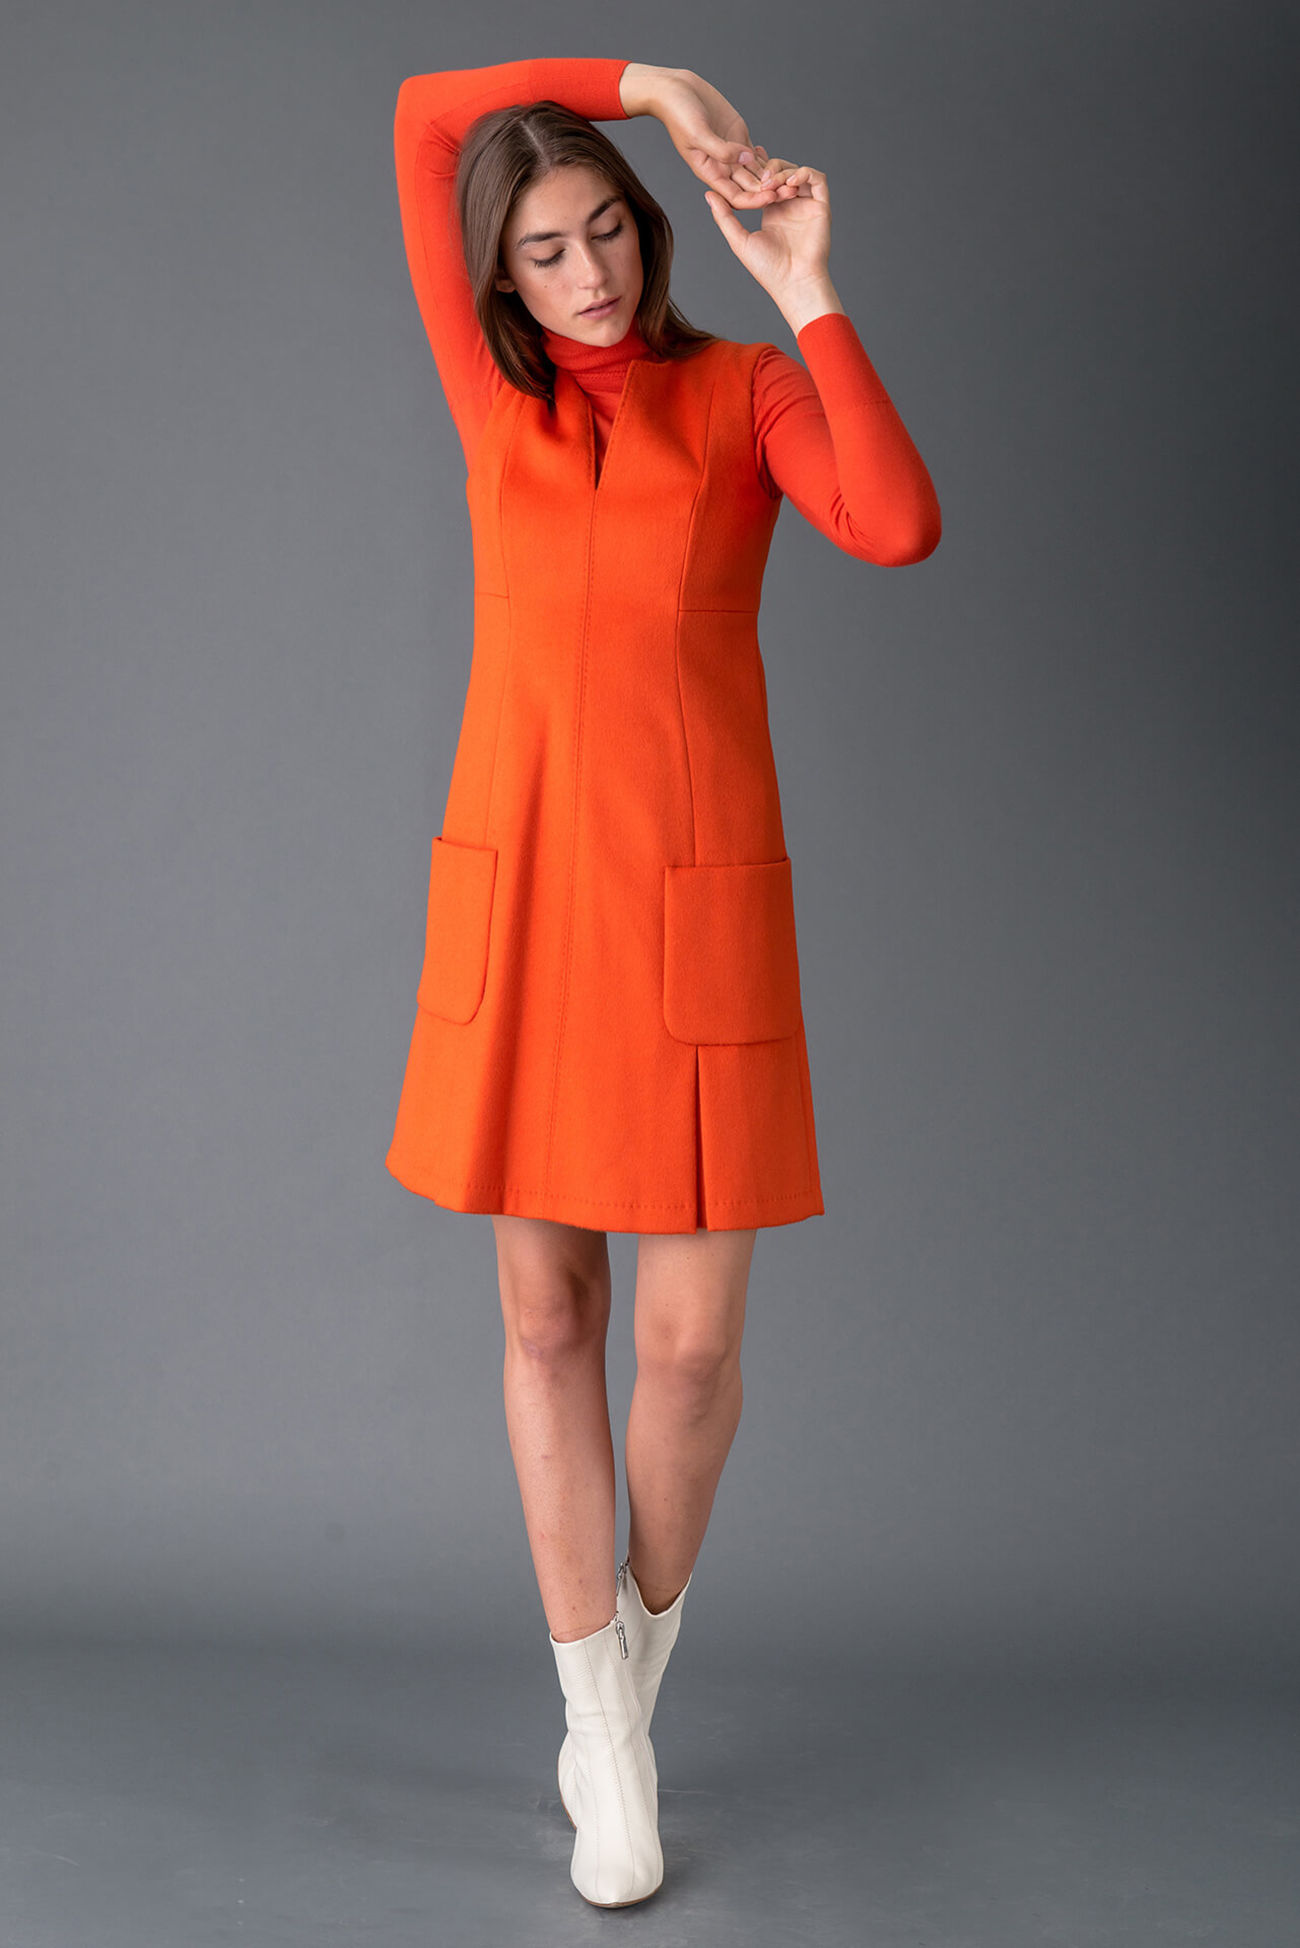 Winter sheath dress made of high quality wool cloth